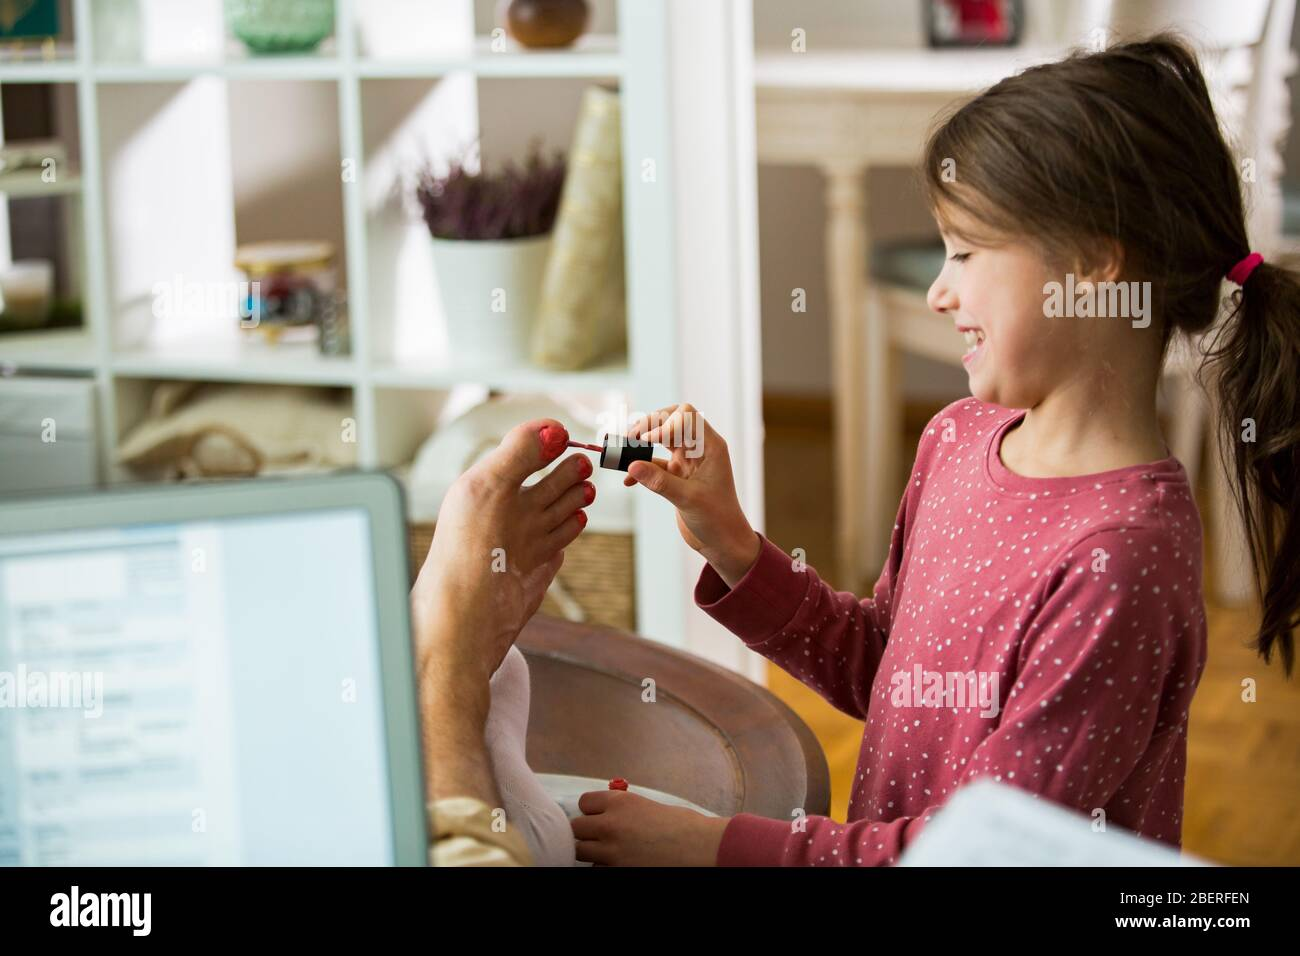 Child playing and disturbing father working remotely from home. Little girl applying nail polish on toenails. Man sitting on couch with laptop. Family Stock Photo